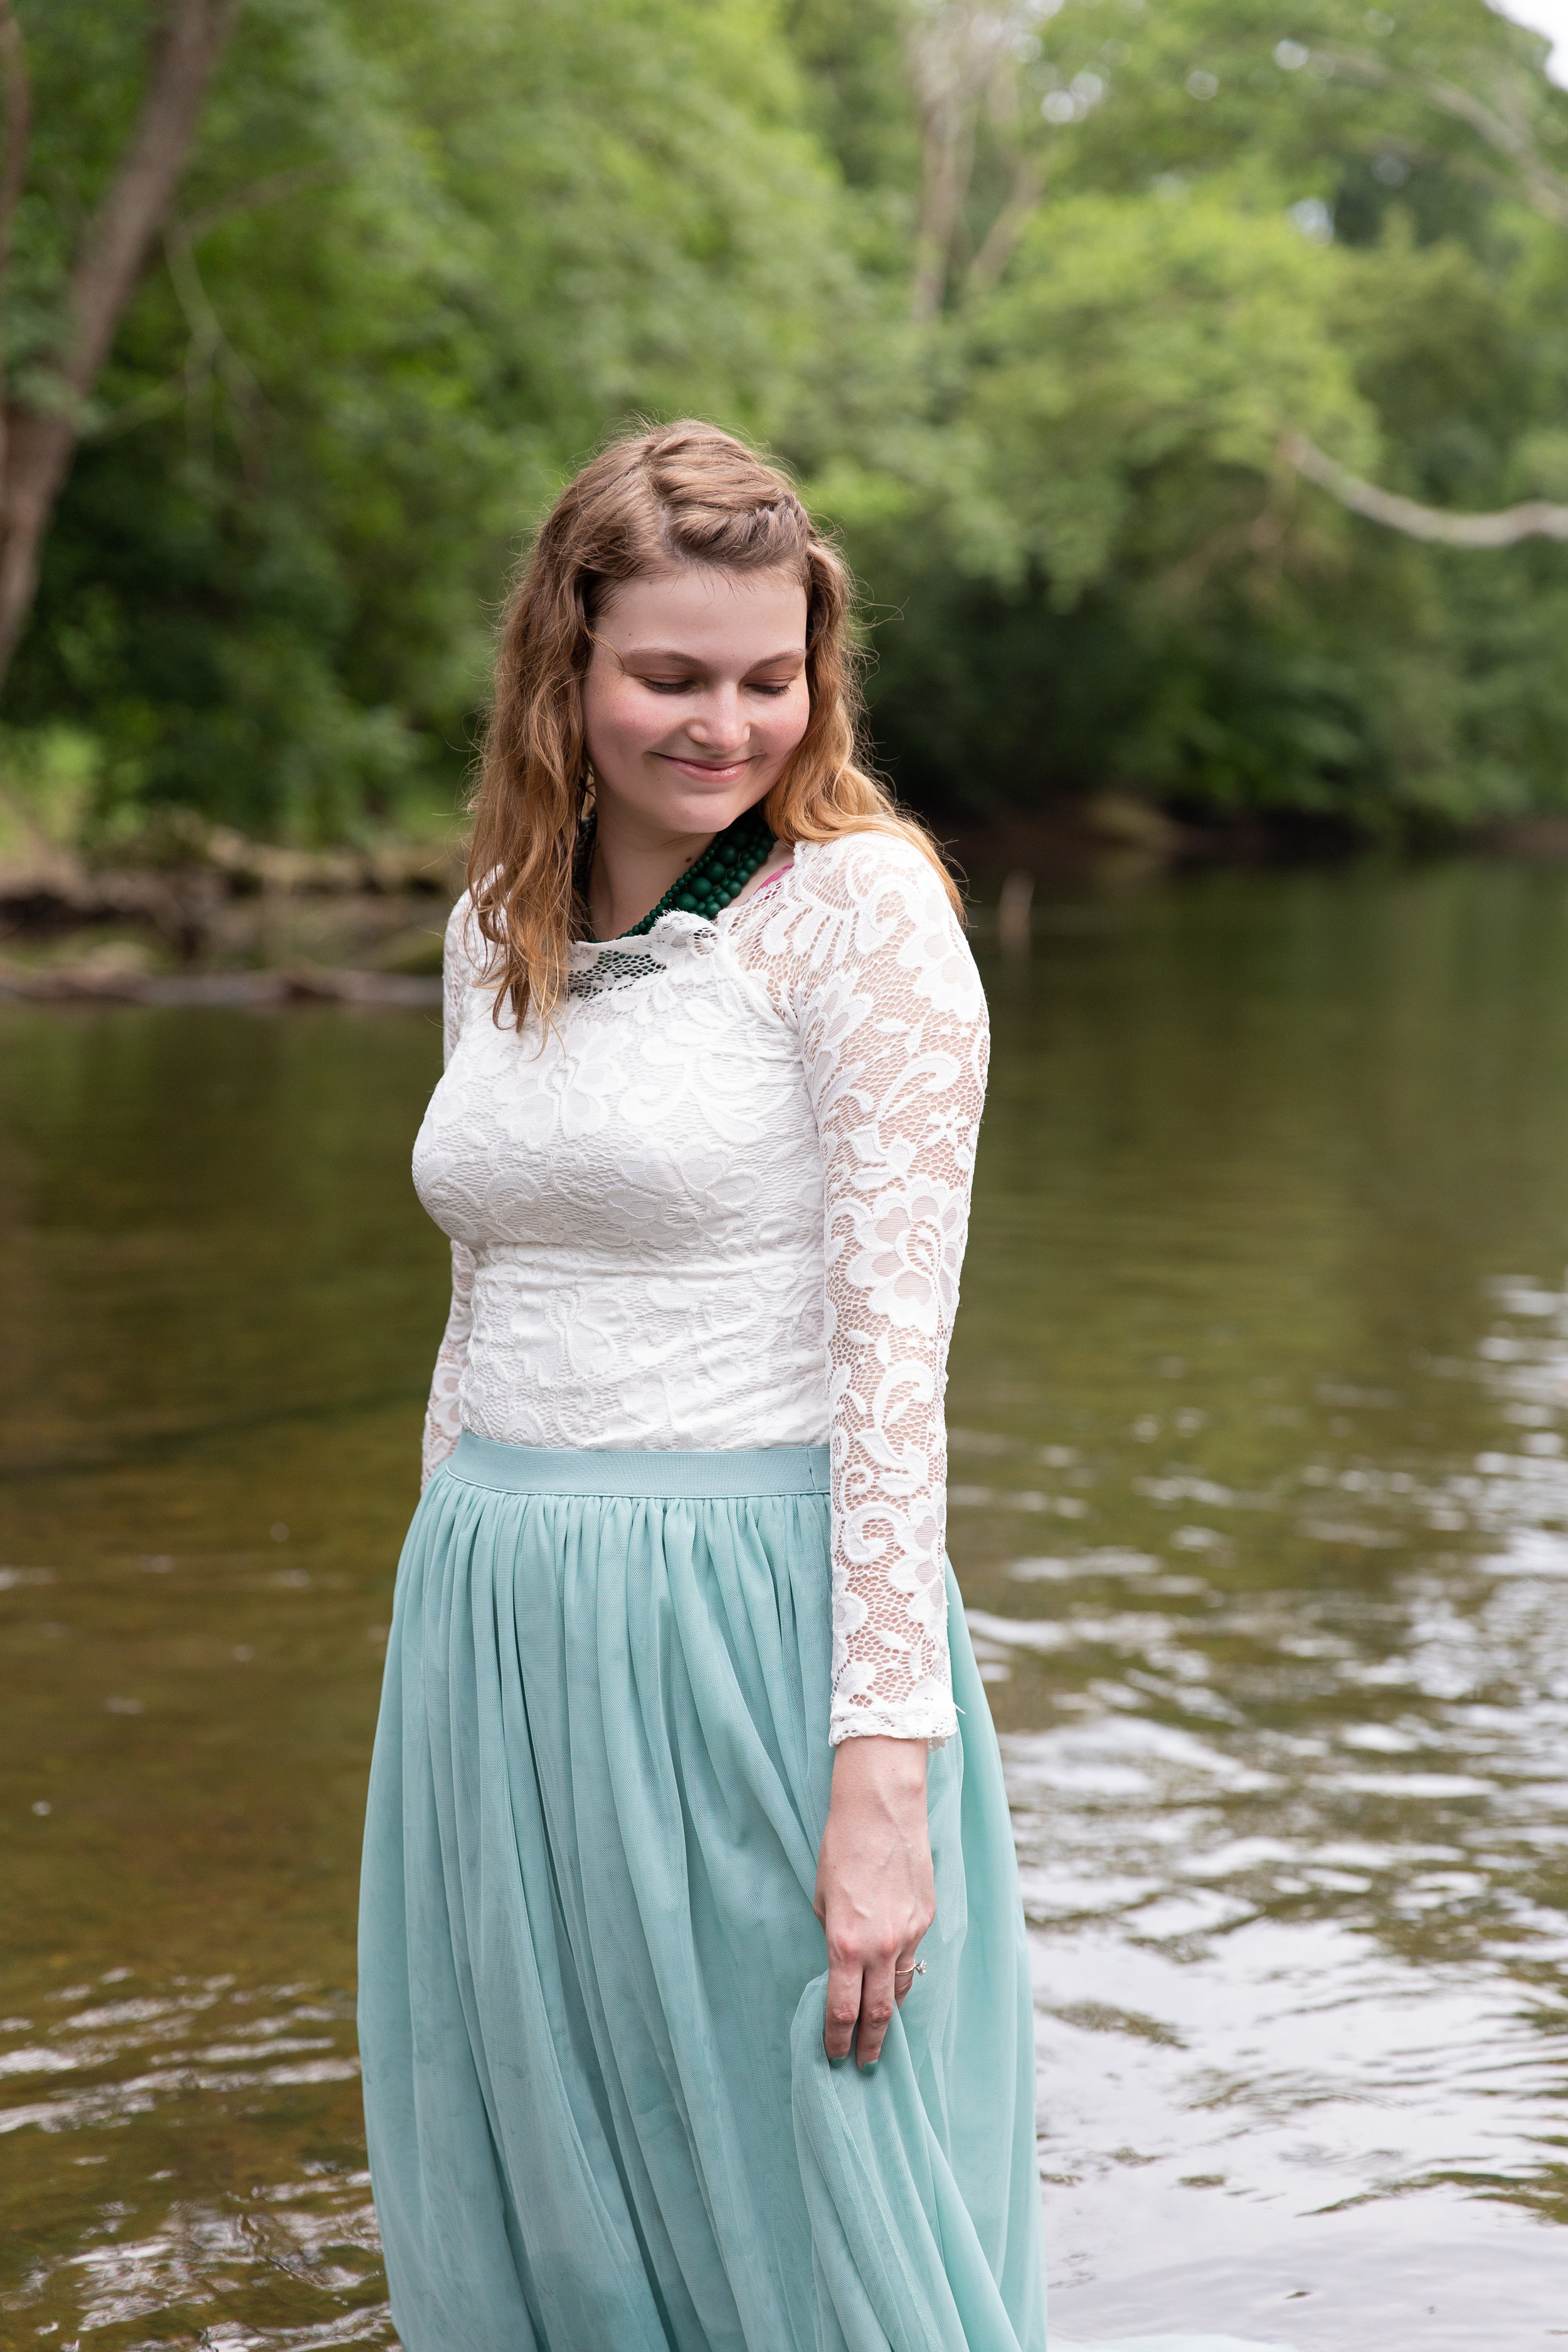 bride to be smiling and looking down while standing in creek